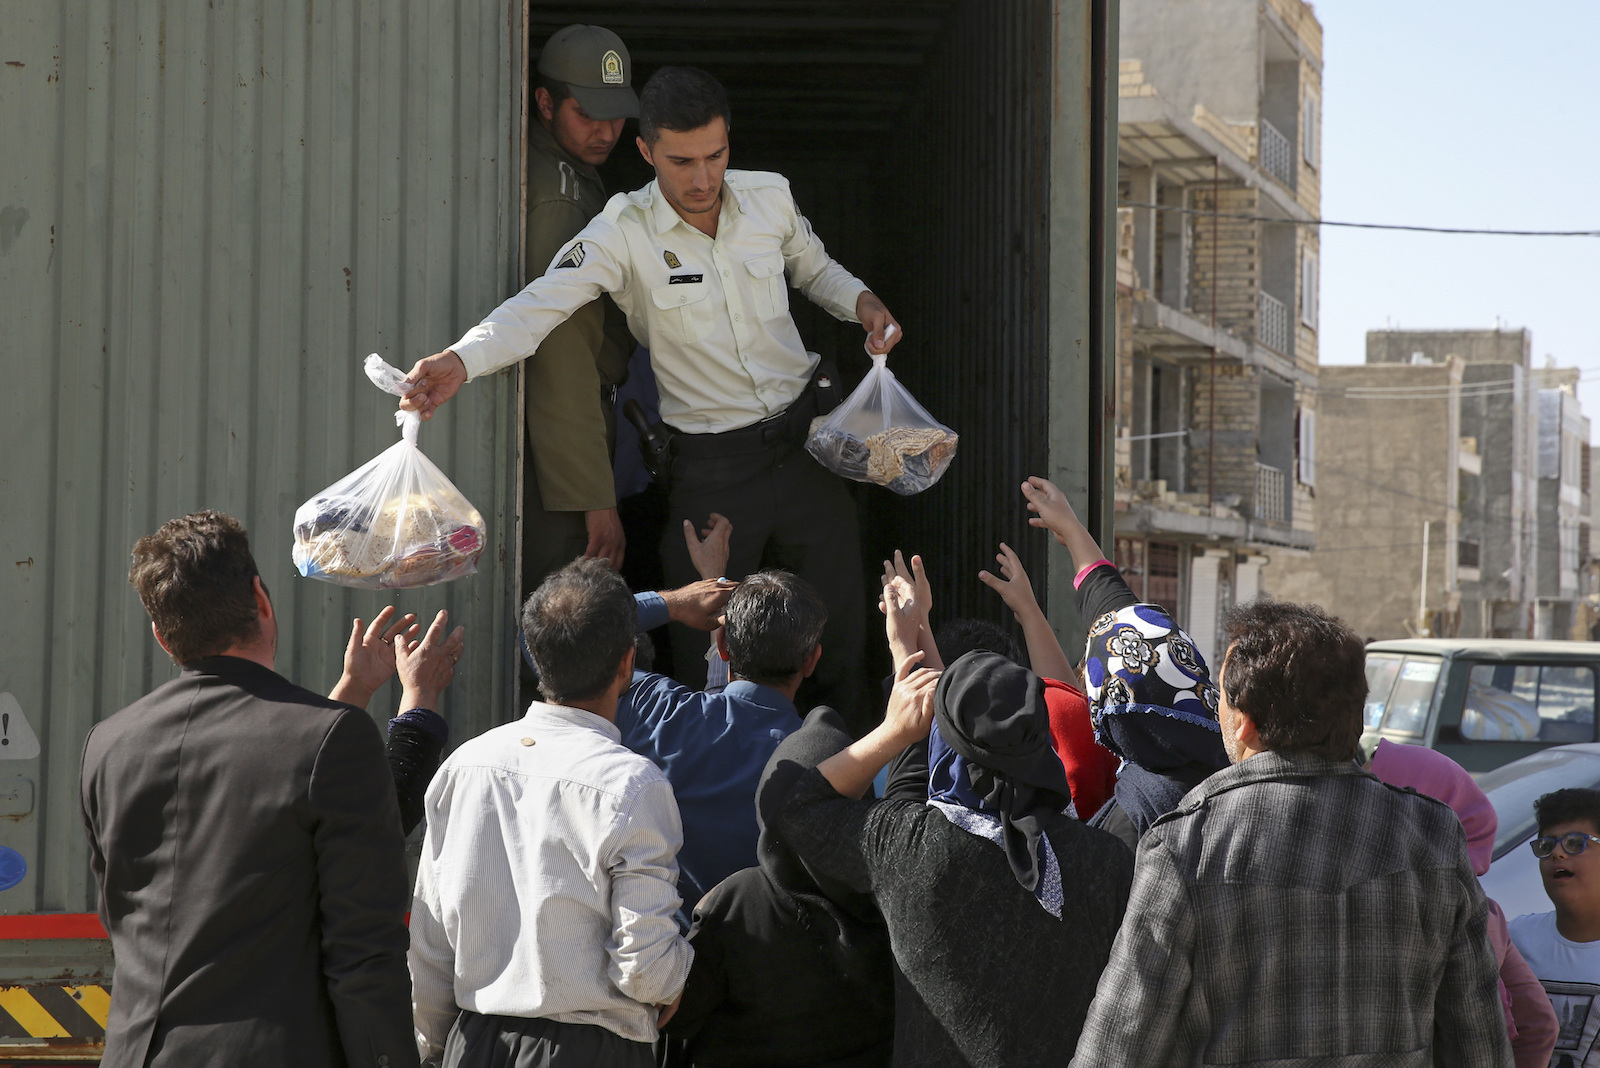 A police officer gives supplies to survivors of the earthquake in Iran